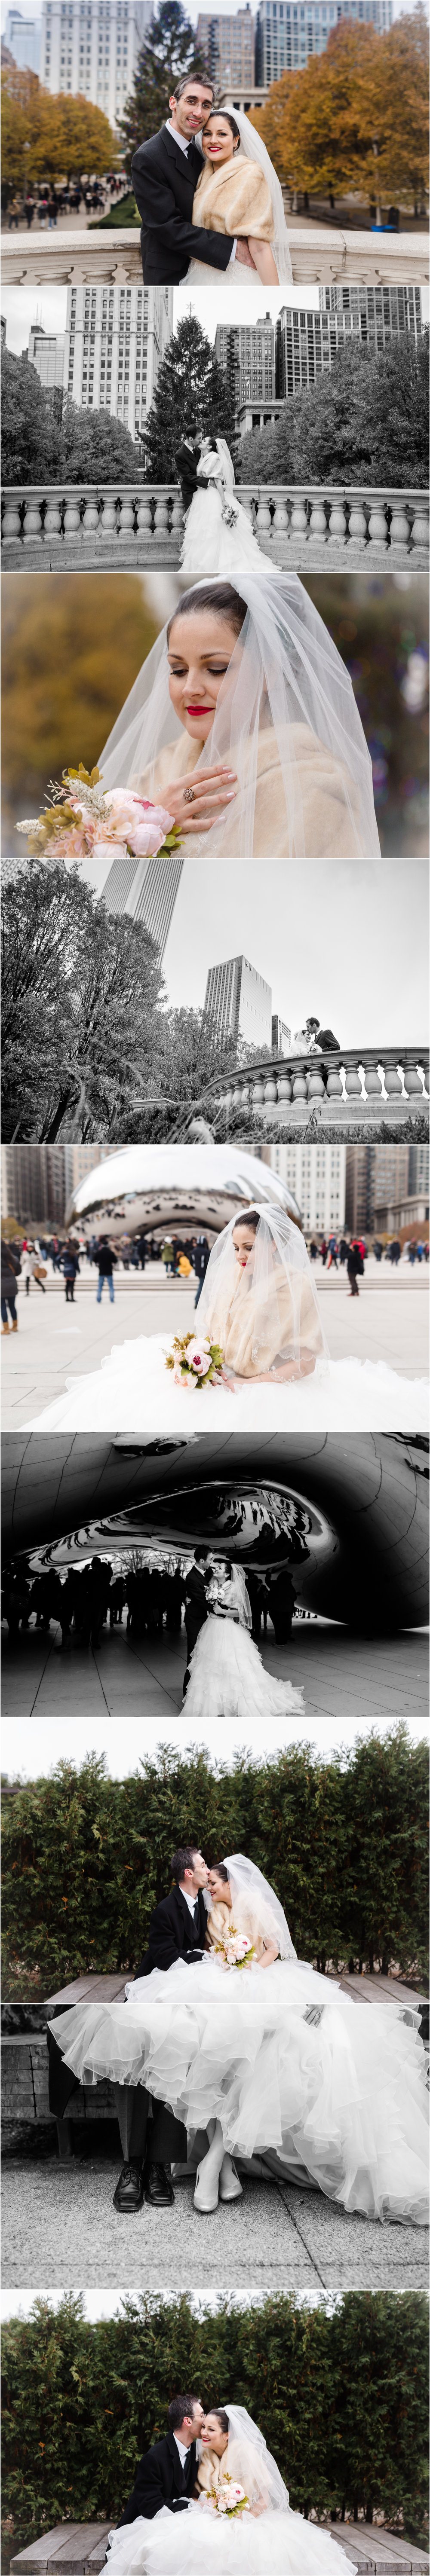 chicago lifestyle elopement photographer jenny grimm